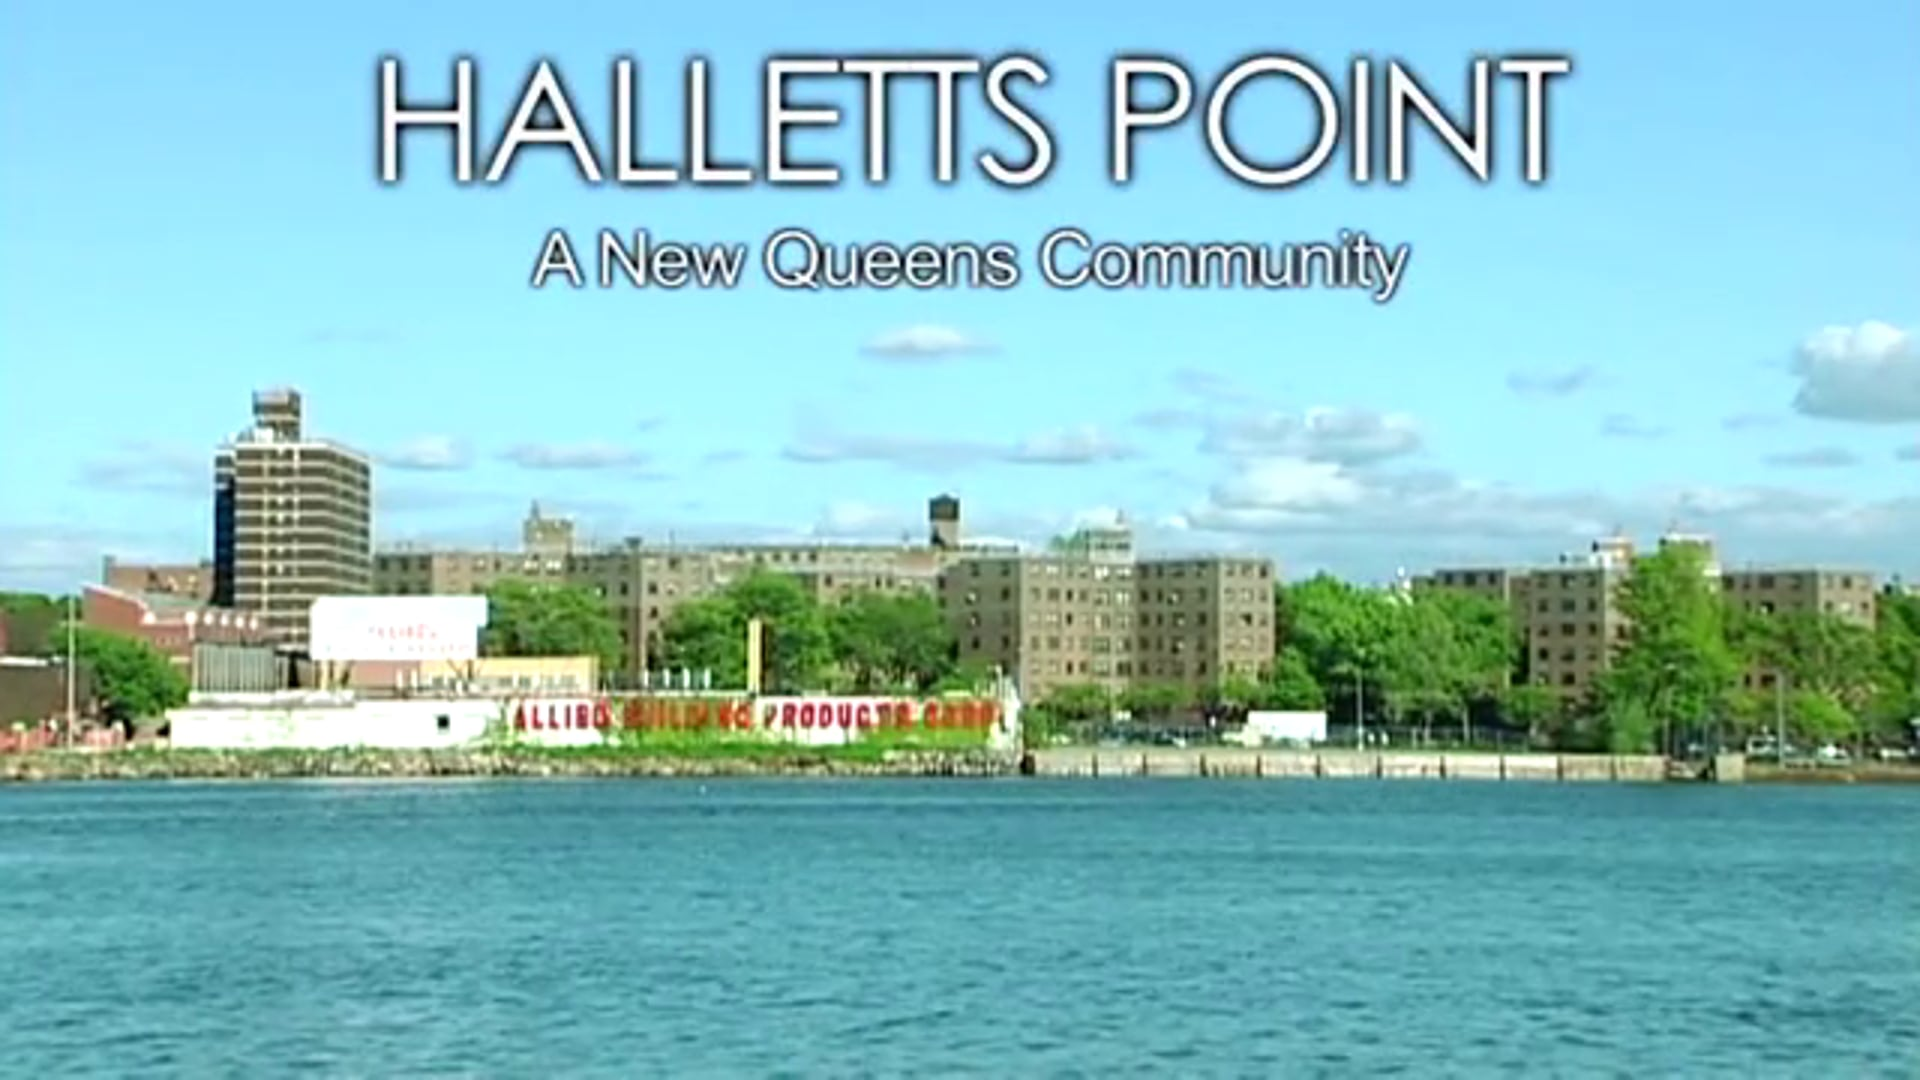 Halletts Point - A New Queens Community